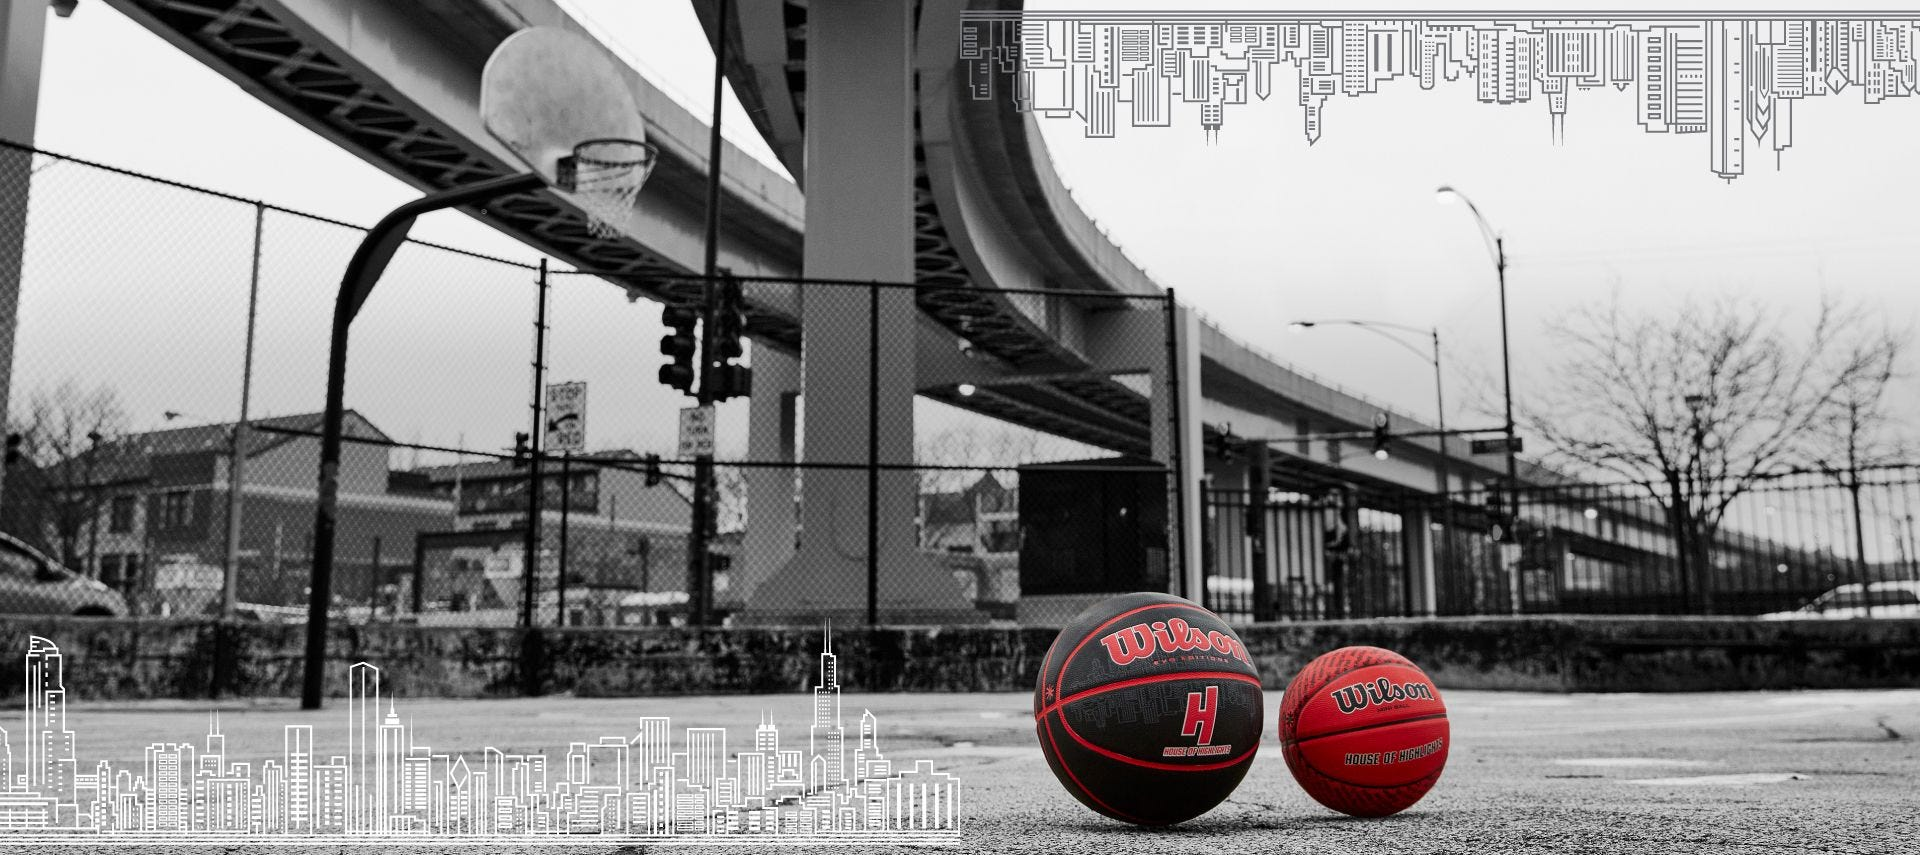 Wilson and House of HIghlights collab basketballs in red and black